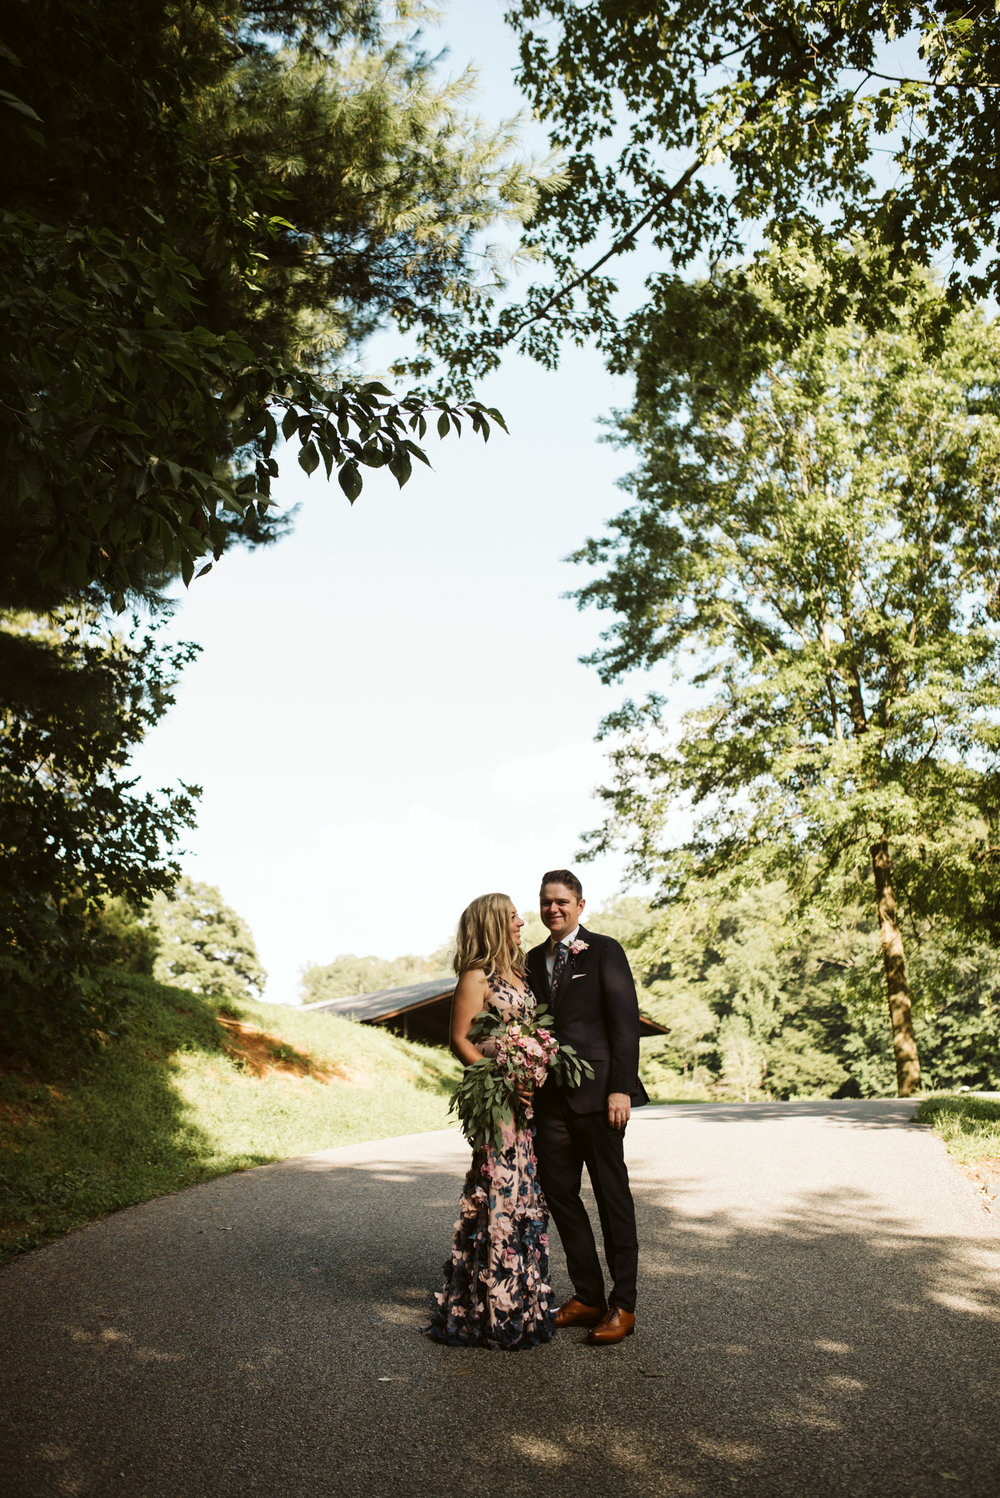 Outdoor Wedding, Casual, Simple, Lake Roland, Baltimore, Maryland Wedding Photographer, Laid Back, DIY Flowers, Eucalyptus and Lisianthus, Bride and Groom Standing on Path, Marchesa Notte Dress